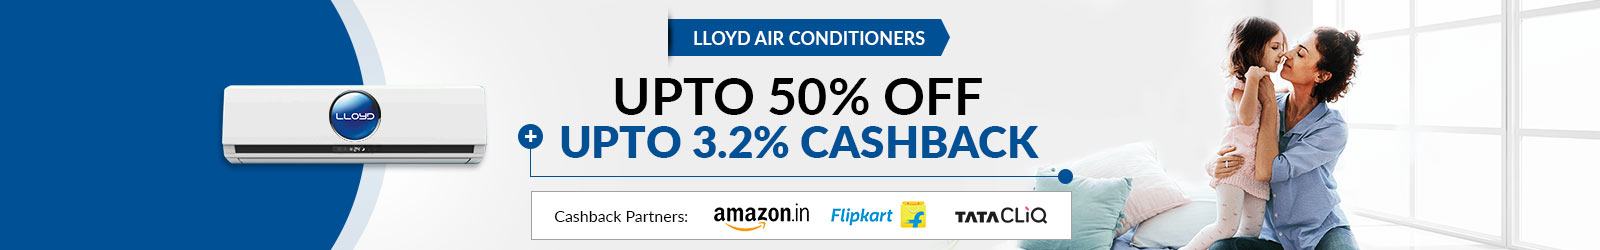 Lloyd AC Online Price List India  Upto 50% Off Offers  106f44357